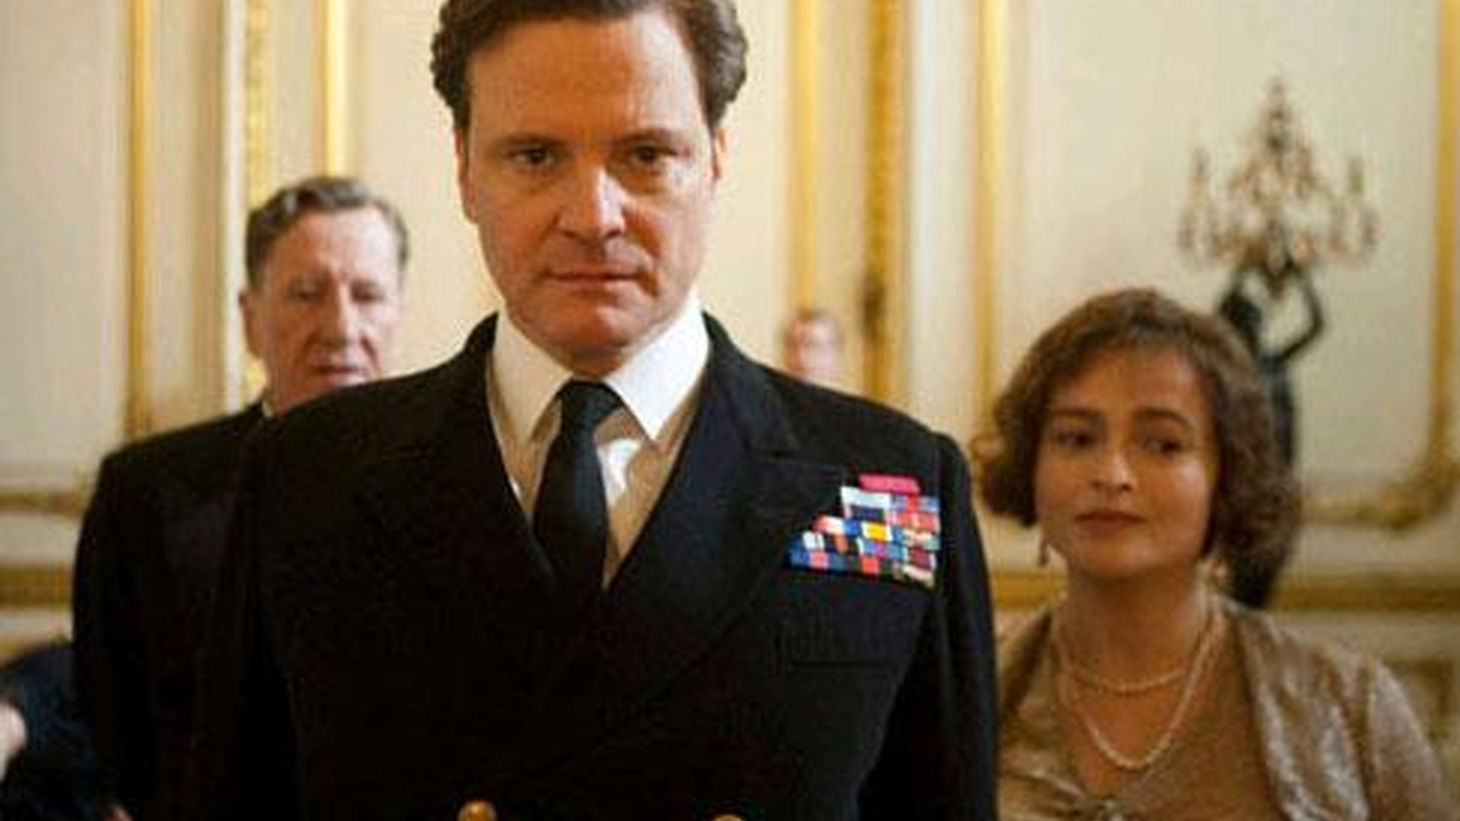 The King's Speech is one of the most pleasurable movies to come along in years. The pleasure starts with two magnificent performances: Colin Firth as King George VI, who's afflicted by a terrible stutter, and Geoffrey Rush as an unorthodox Australian speech therapist... 